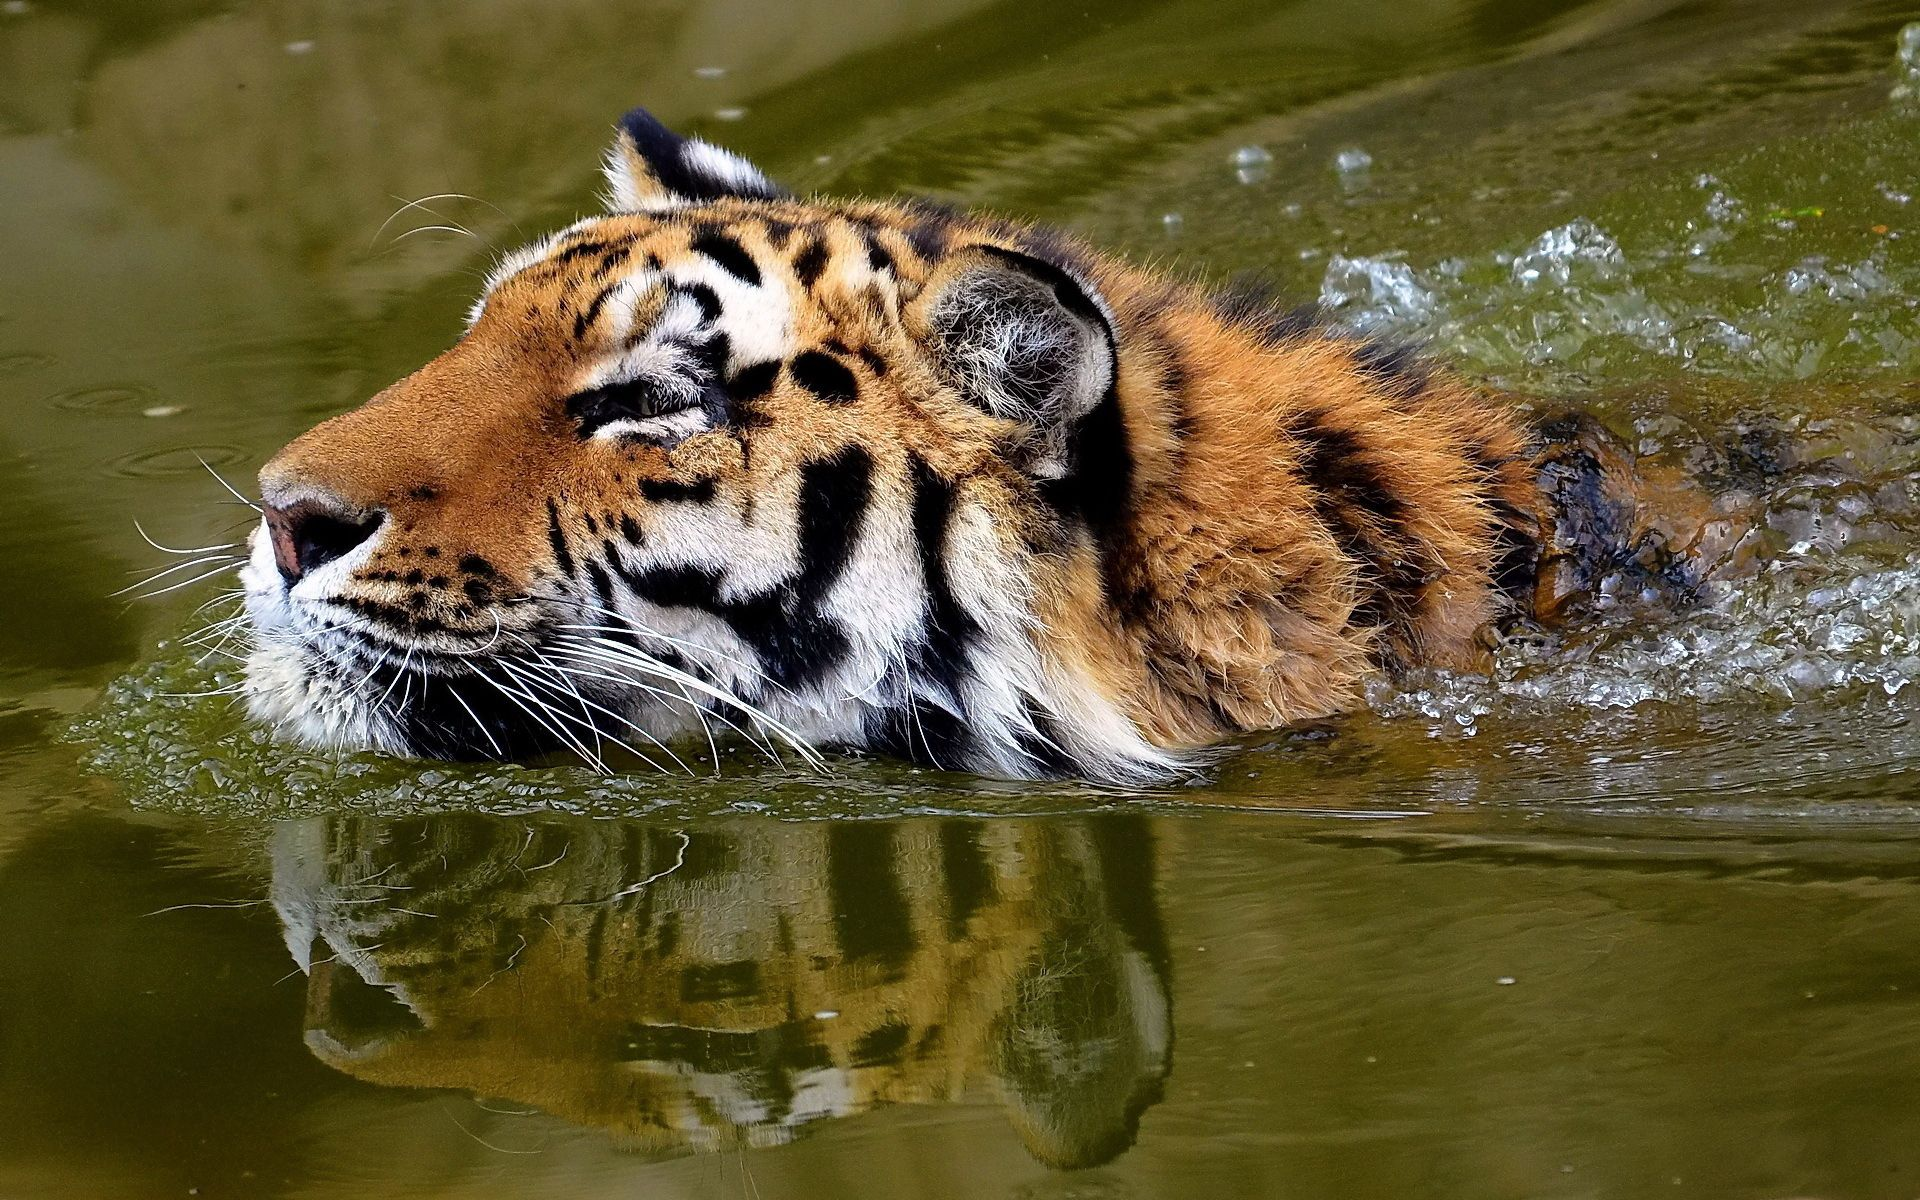 72947 download wallpaper Animals, Water, Muzzle, Tiger, To Swim, Swim screensavers and pictures for free